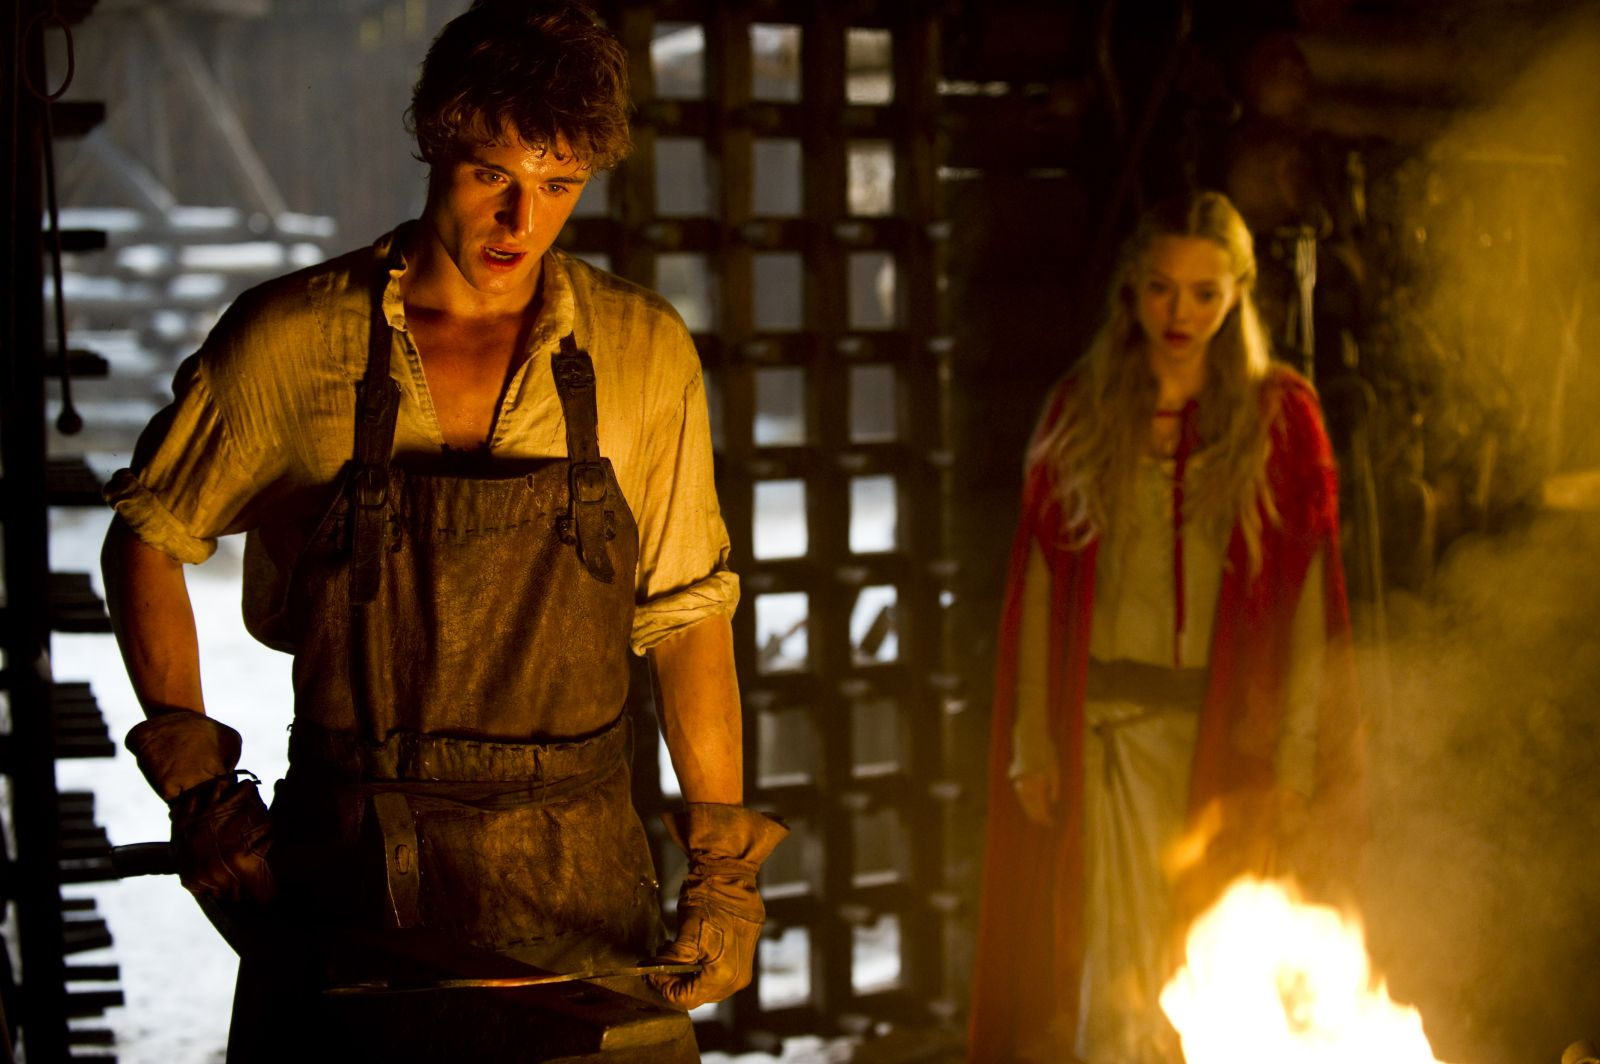 red riding hood Watch video  directed by catherine hardwicke with amanda seyfried, lukas haas, gary oldman, billy burke set in a medieval village that is haunted by a werewolf, a young girl.